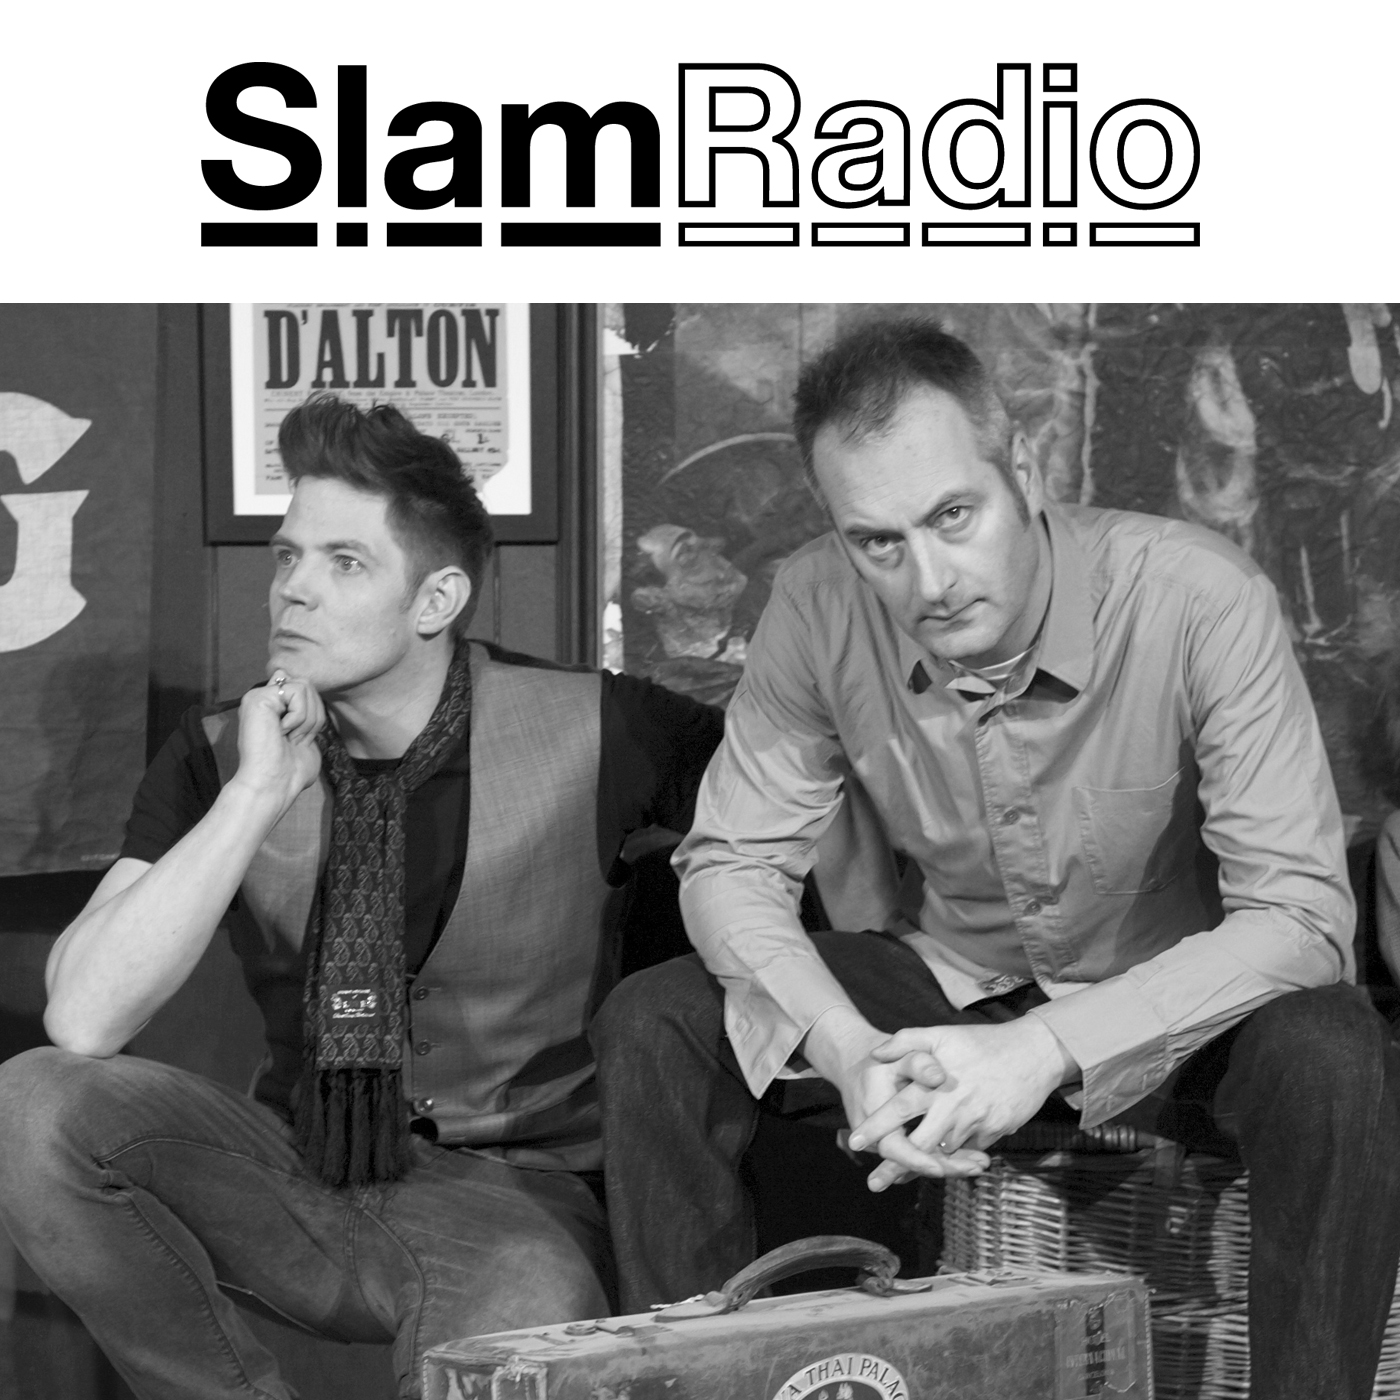 Delta Podcasts - #SlamRadio - 260 - Artefakt (Live) (22.09.2017)